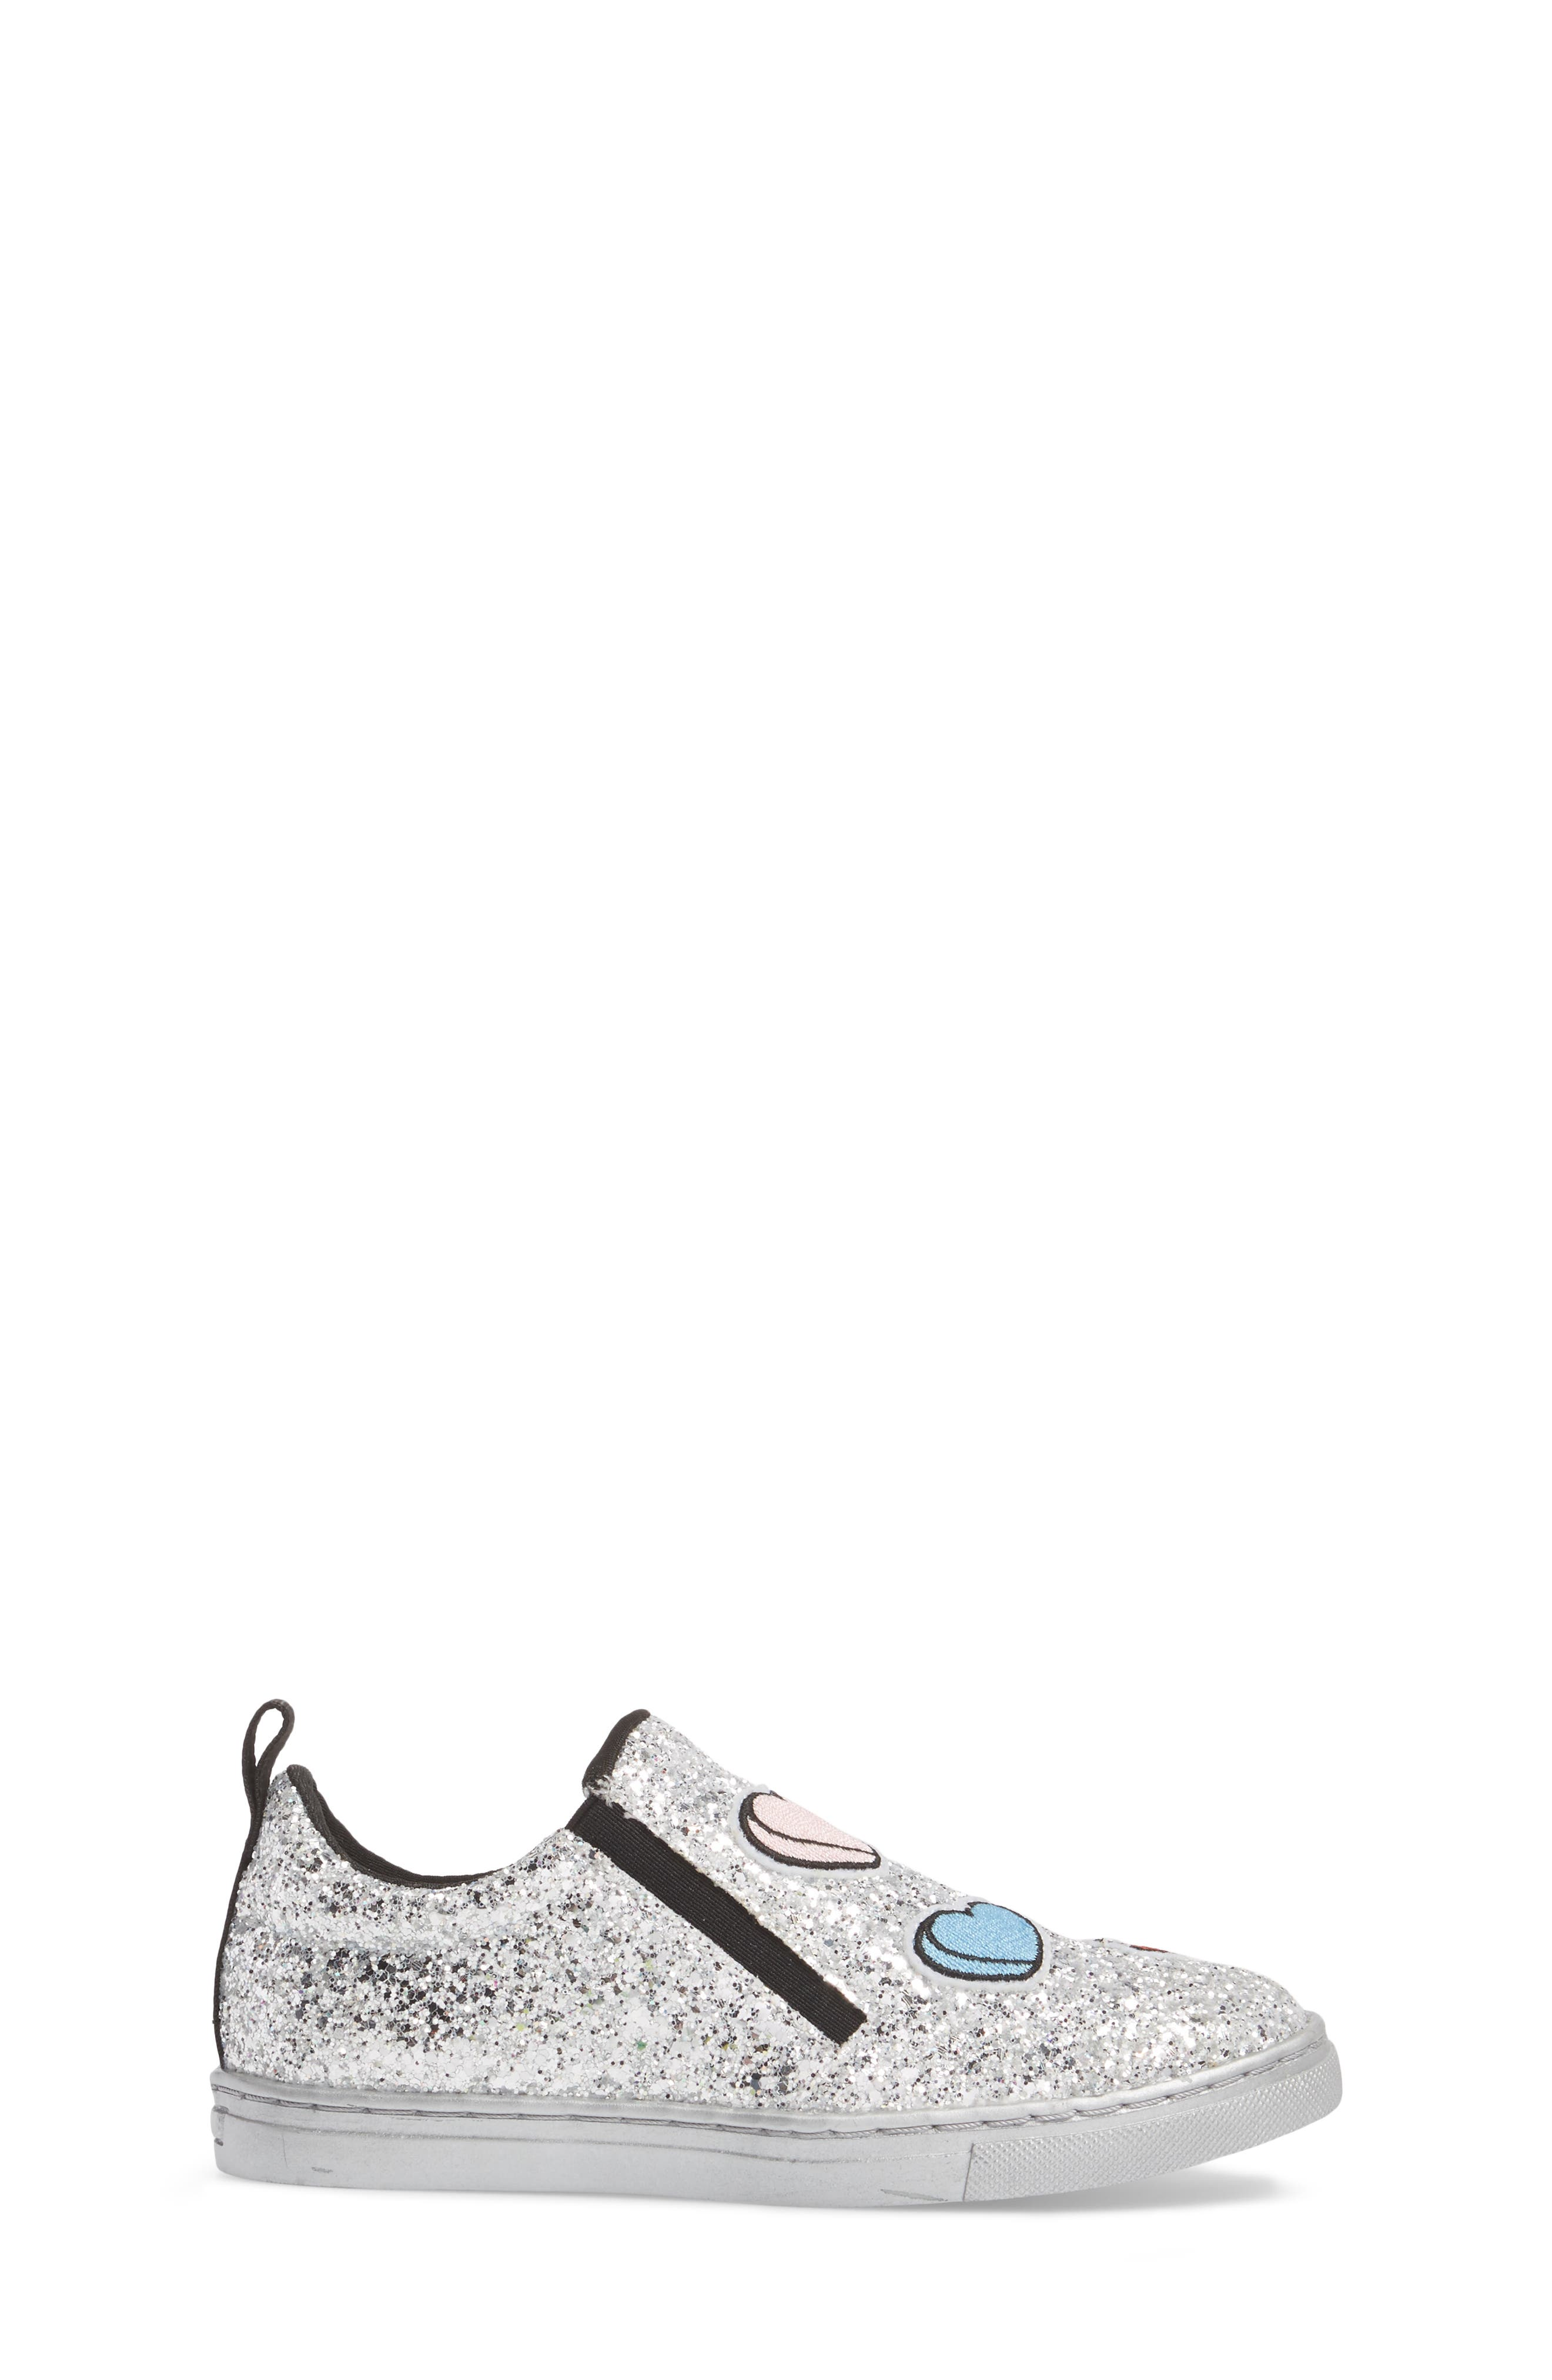 Zach Sneaker,                             Alternate thumbnail 3, color,                             Silver Multi Glitter